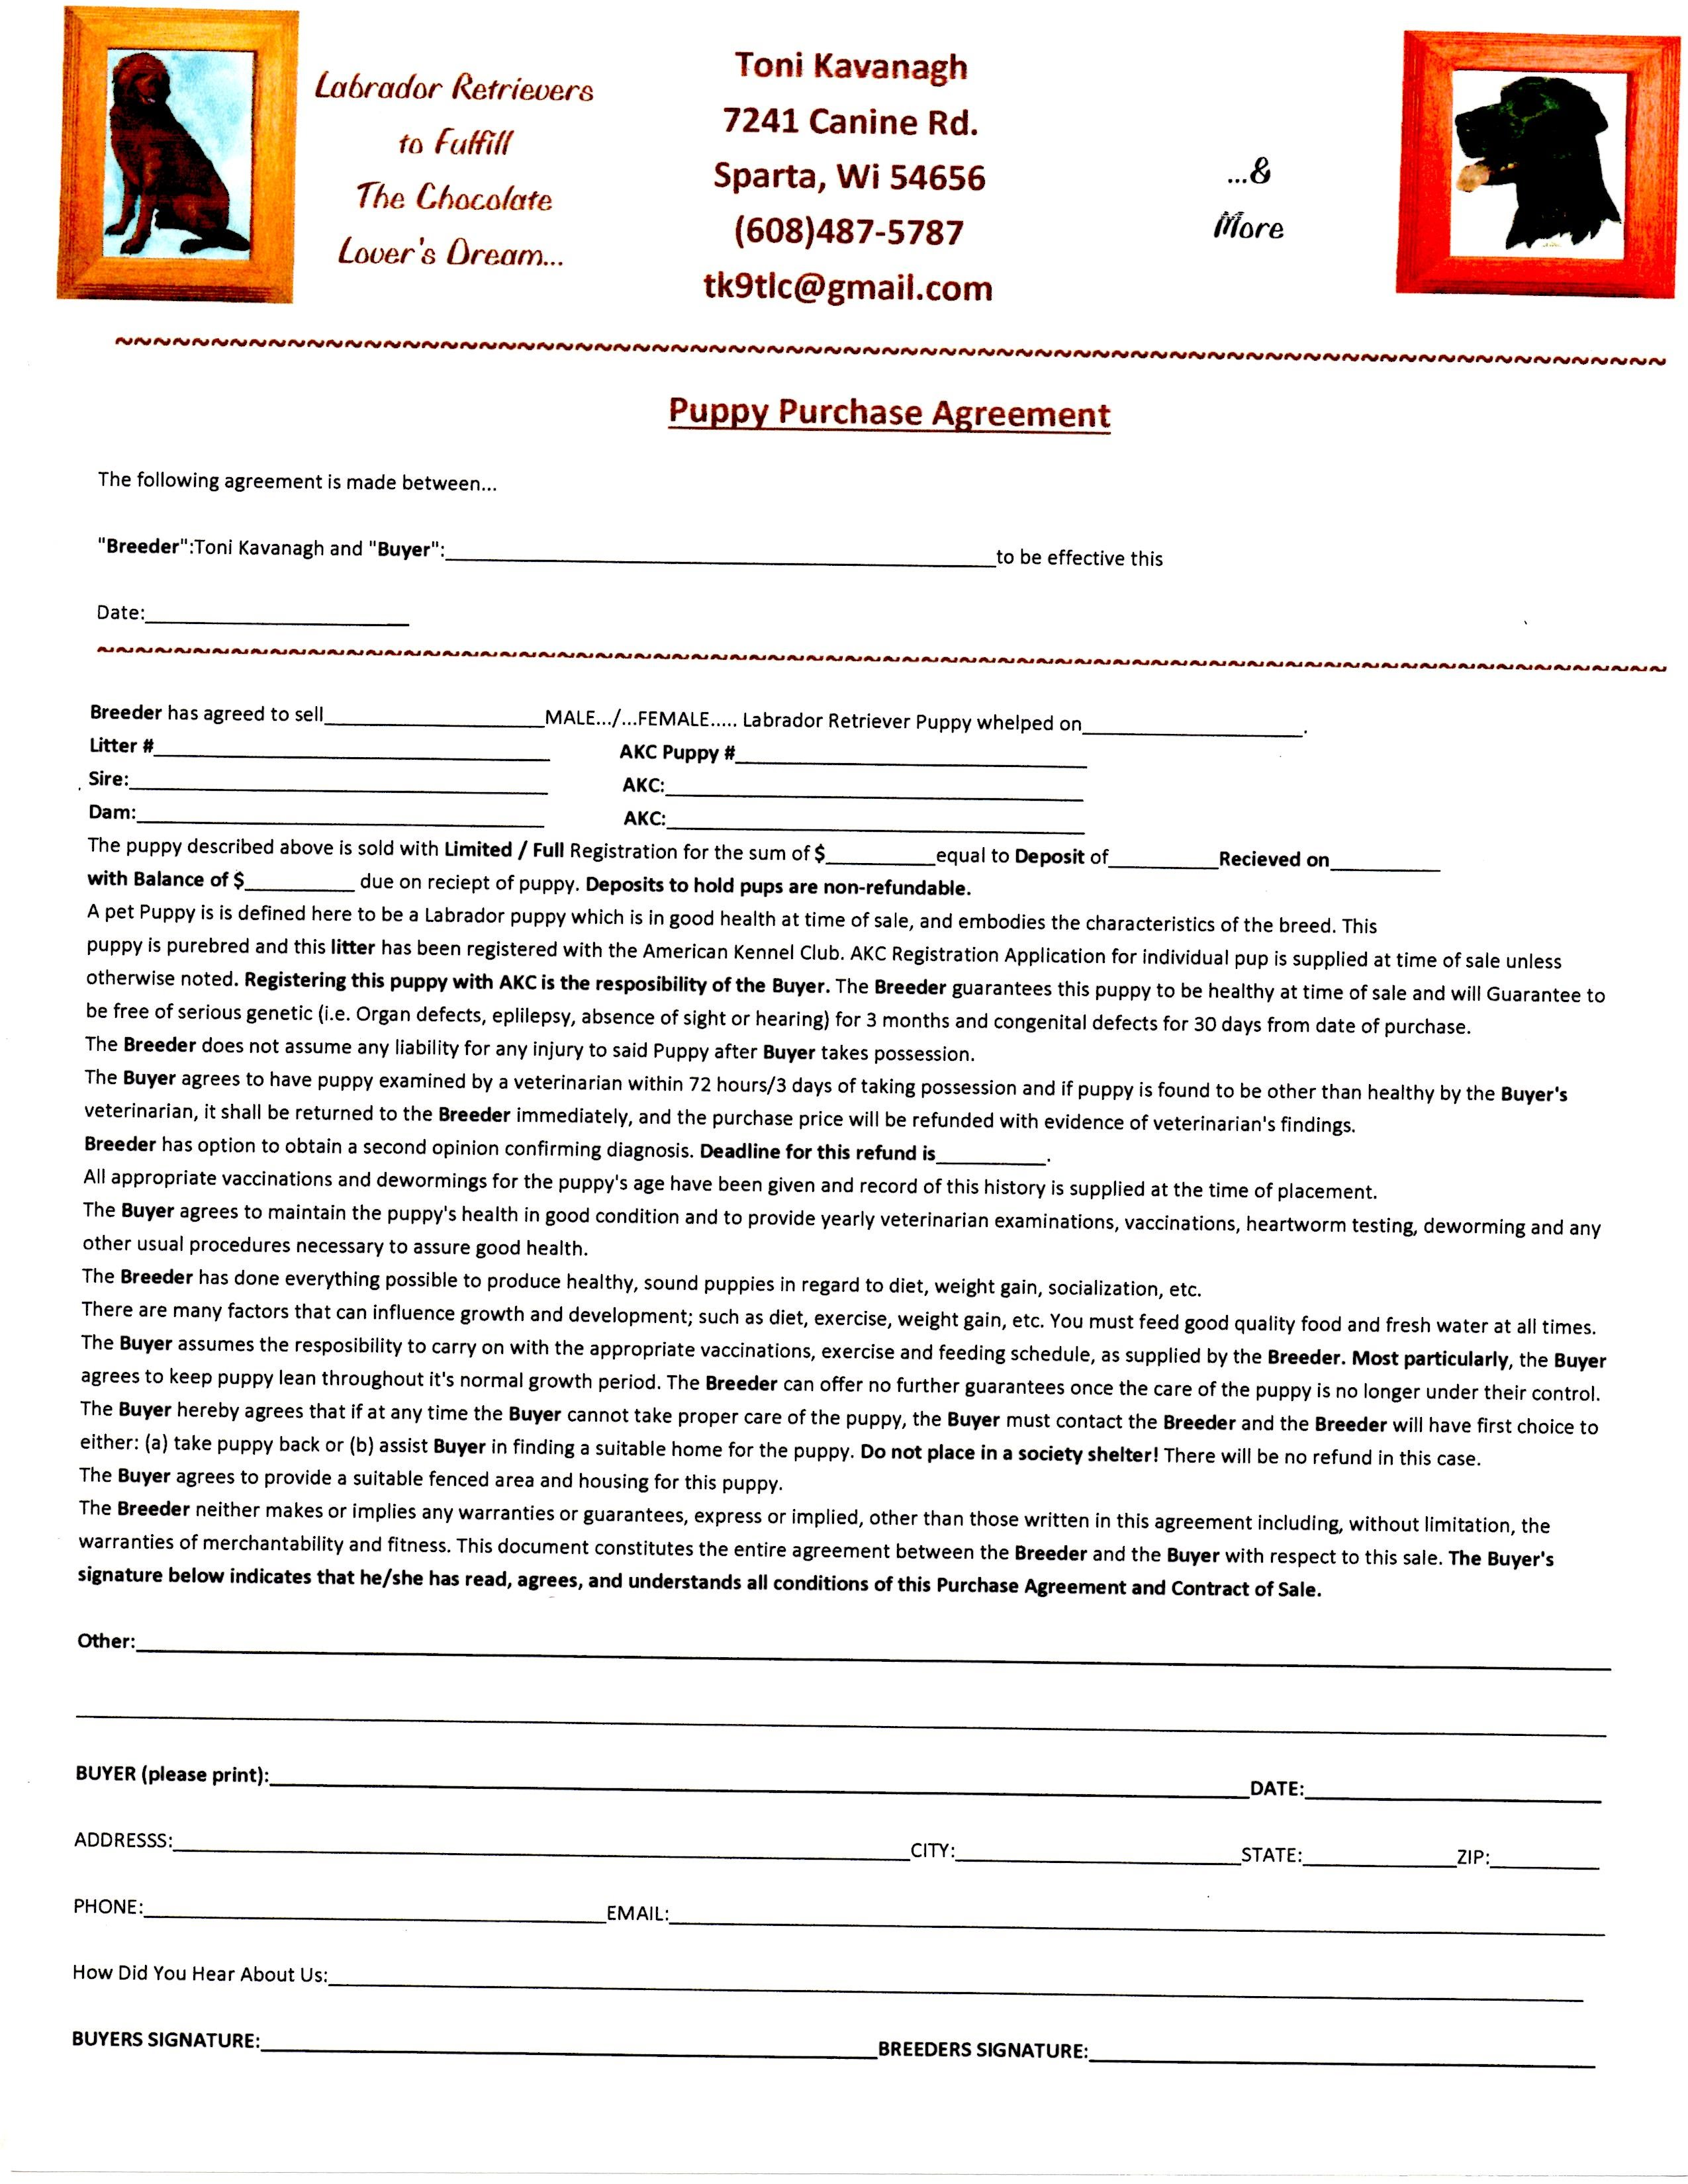 puppy placement agreement